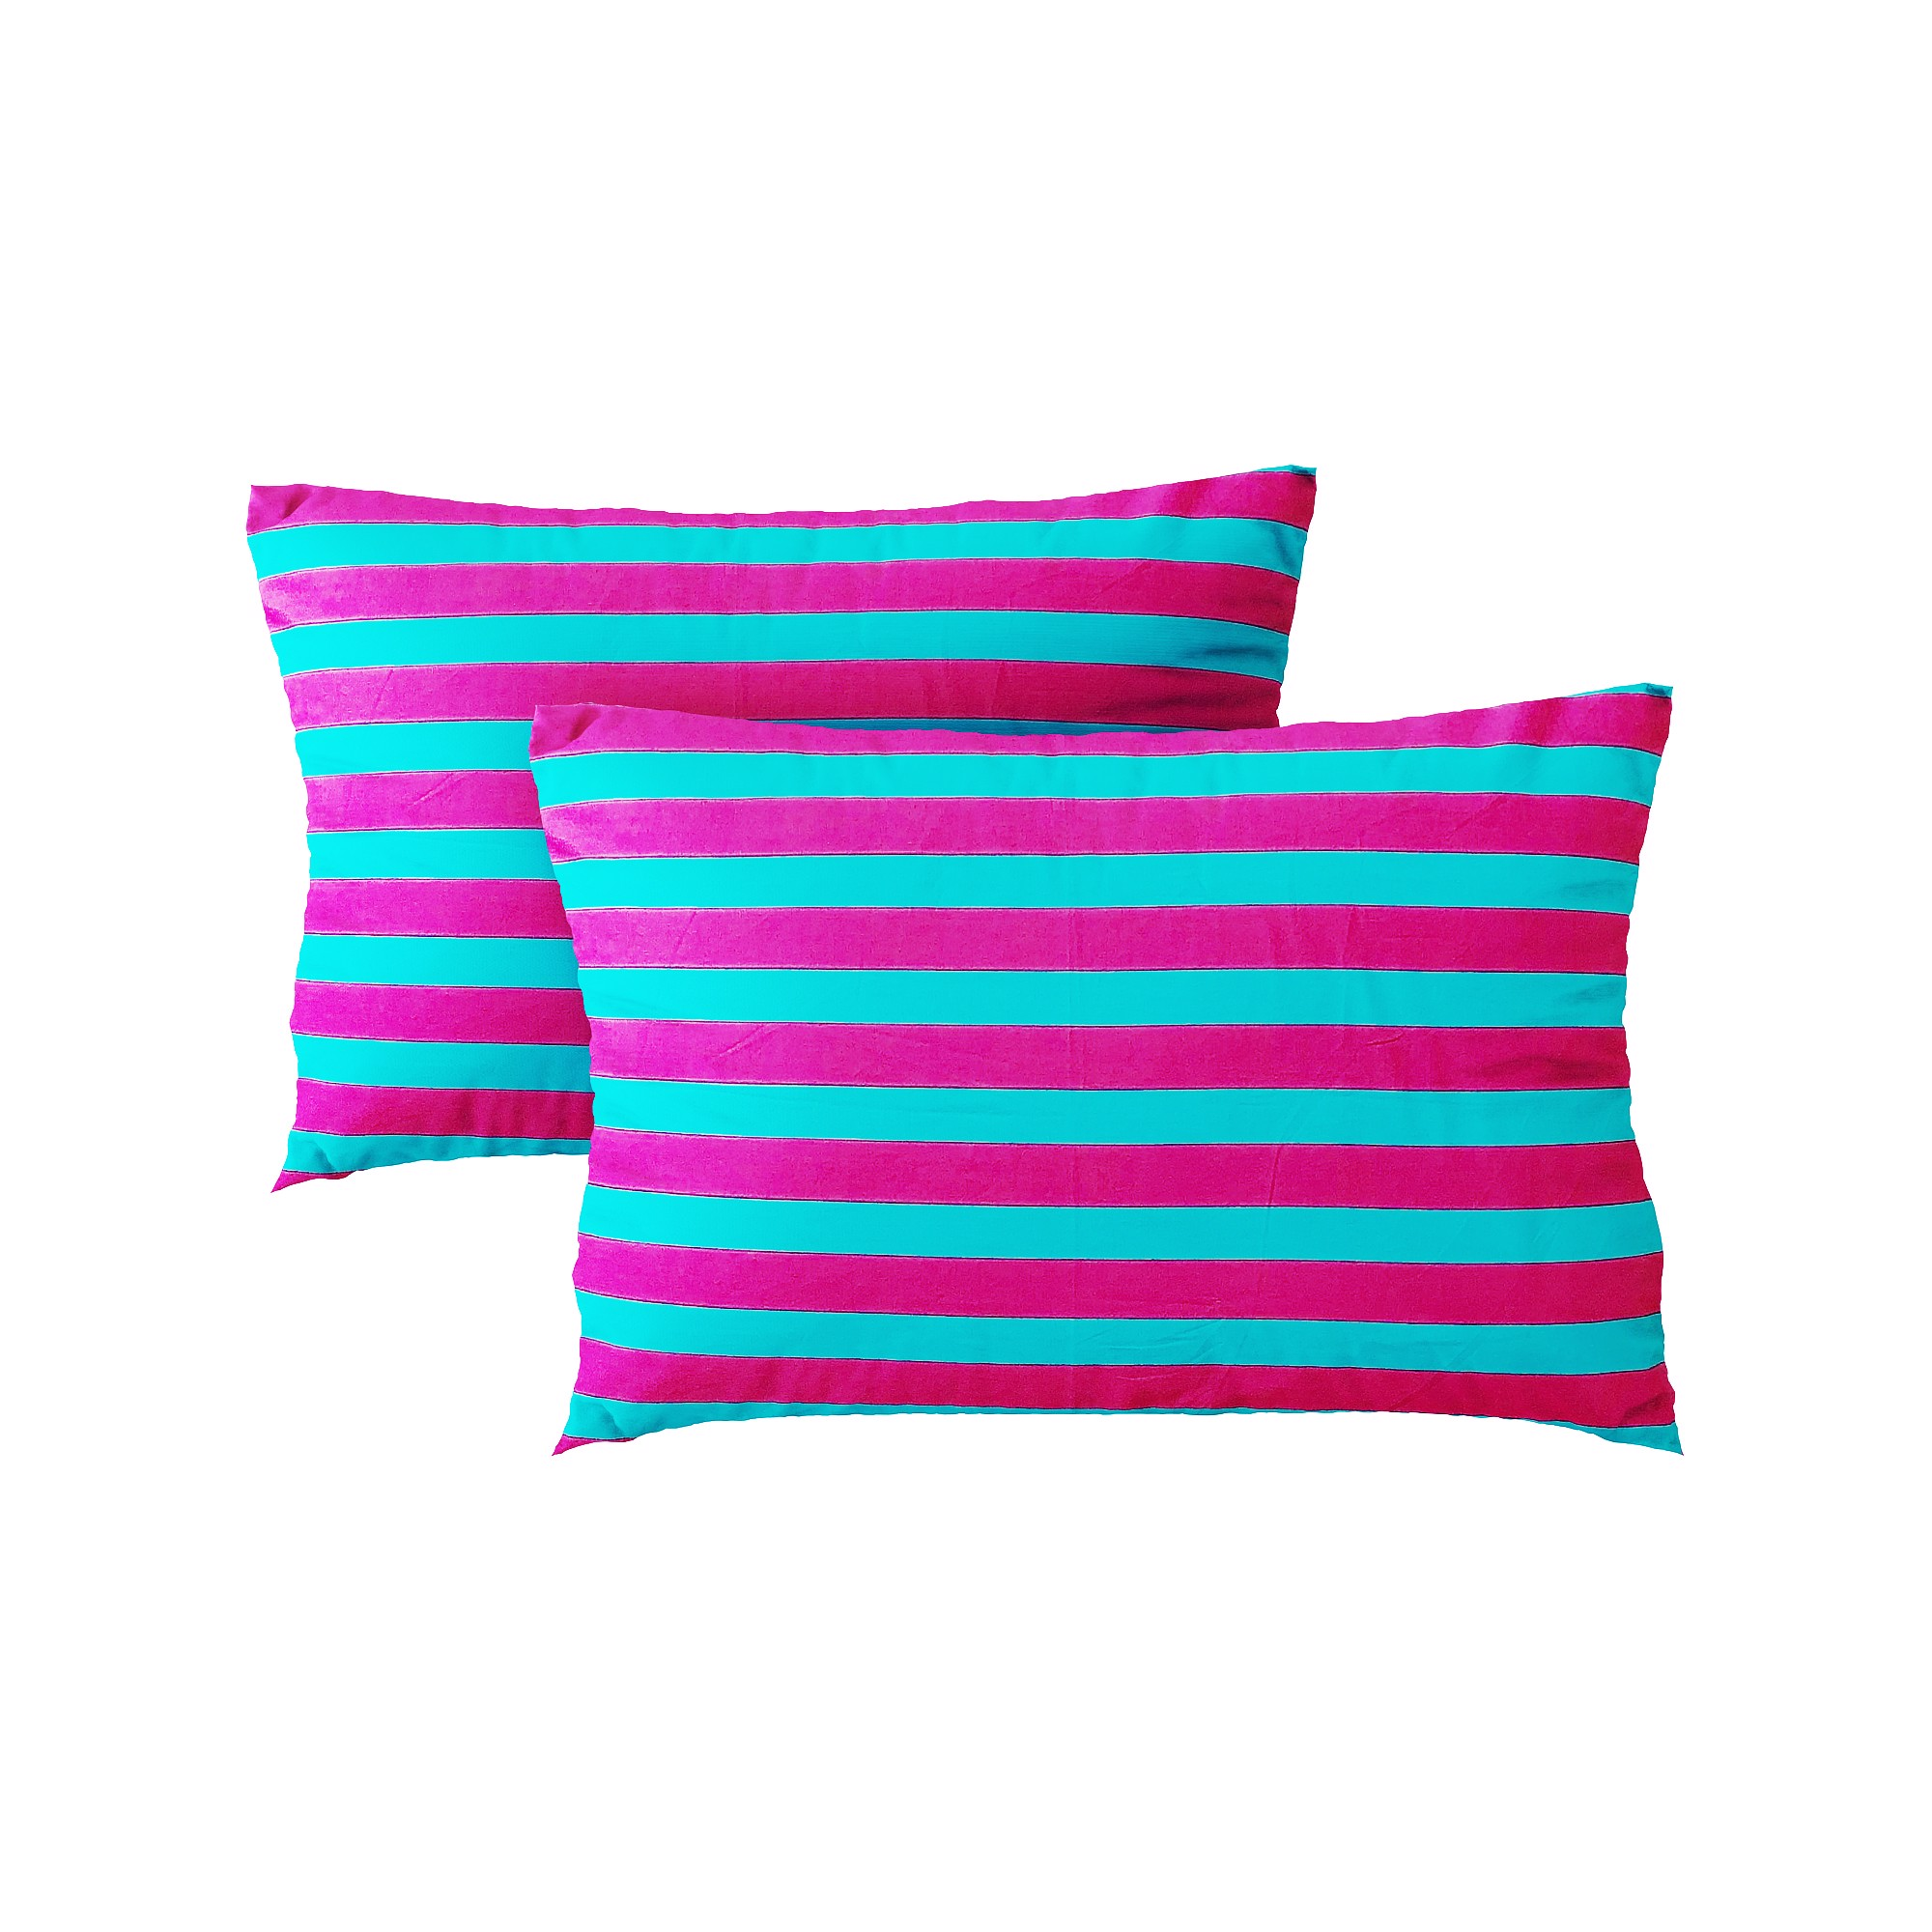 Pillow case 351 Pink blue striped